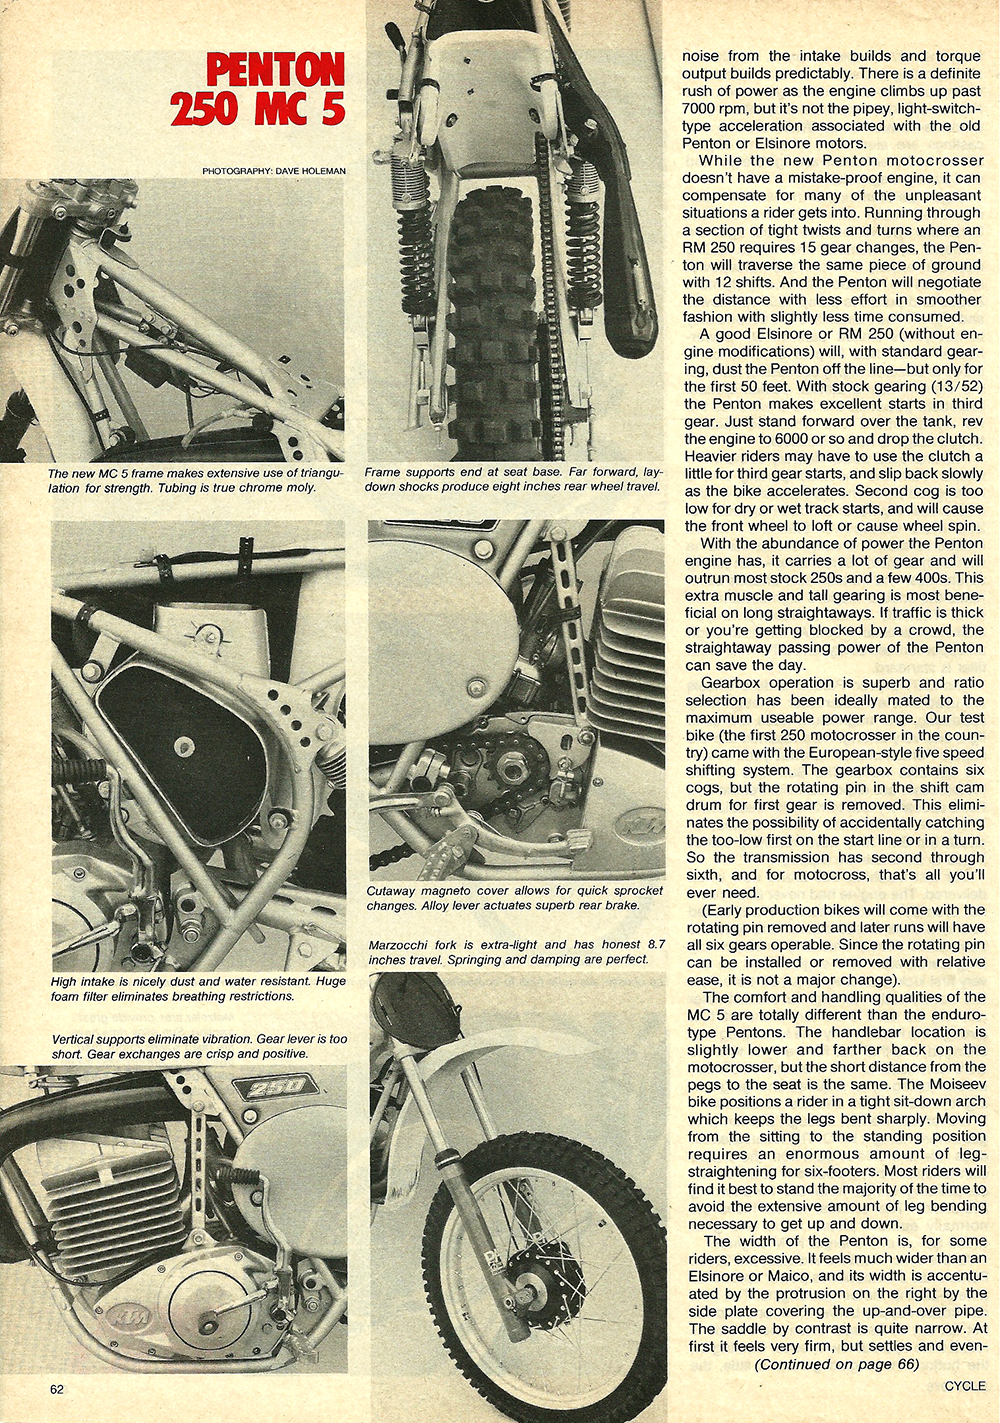 1976 Penton 250 MC 5 road test 5.jpg